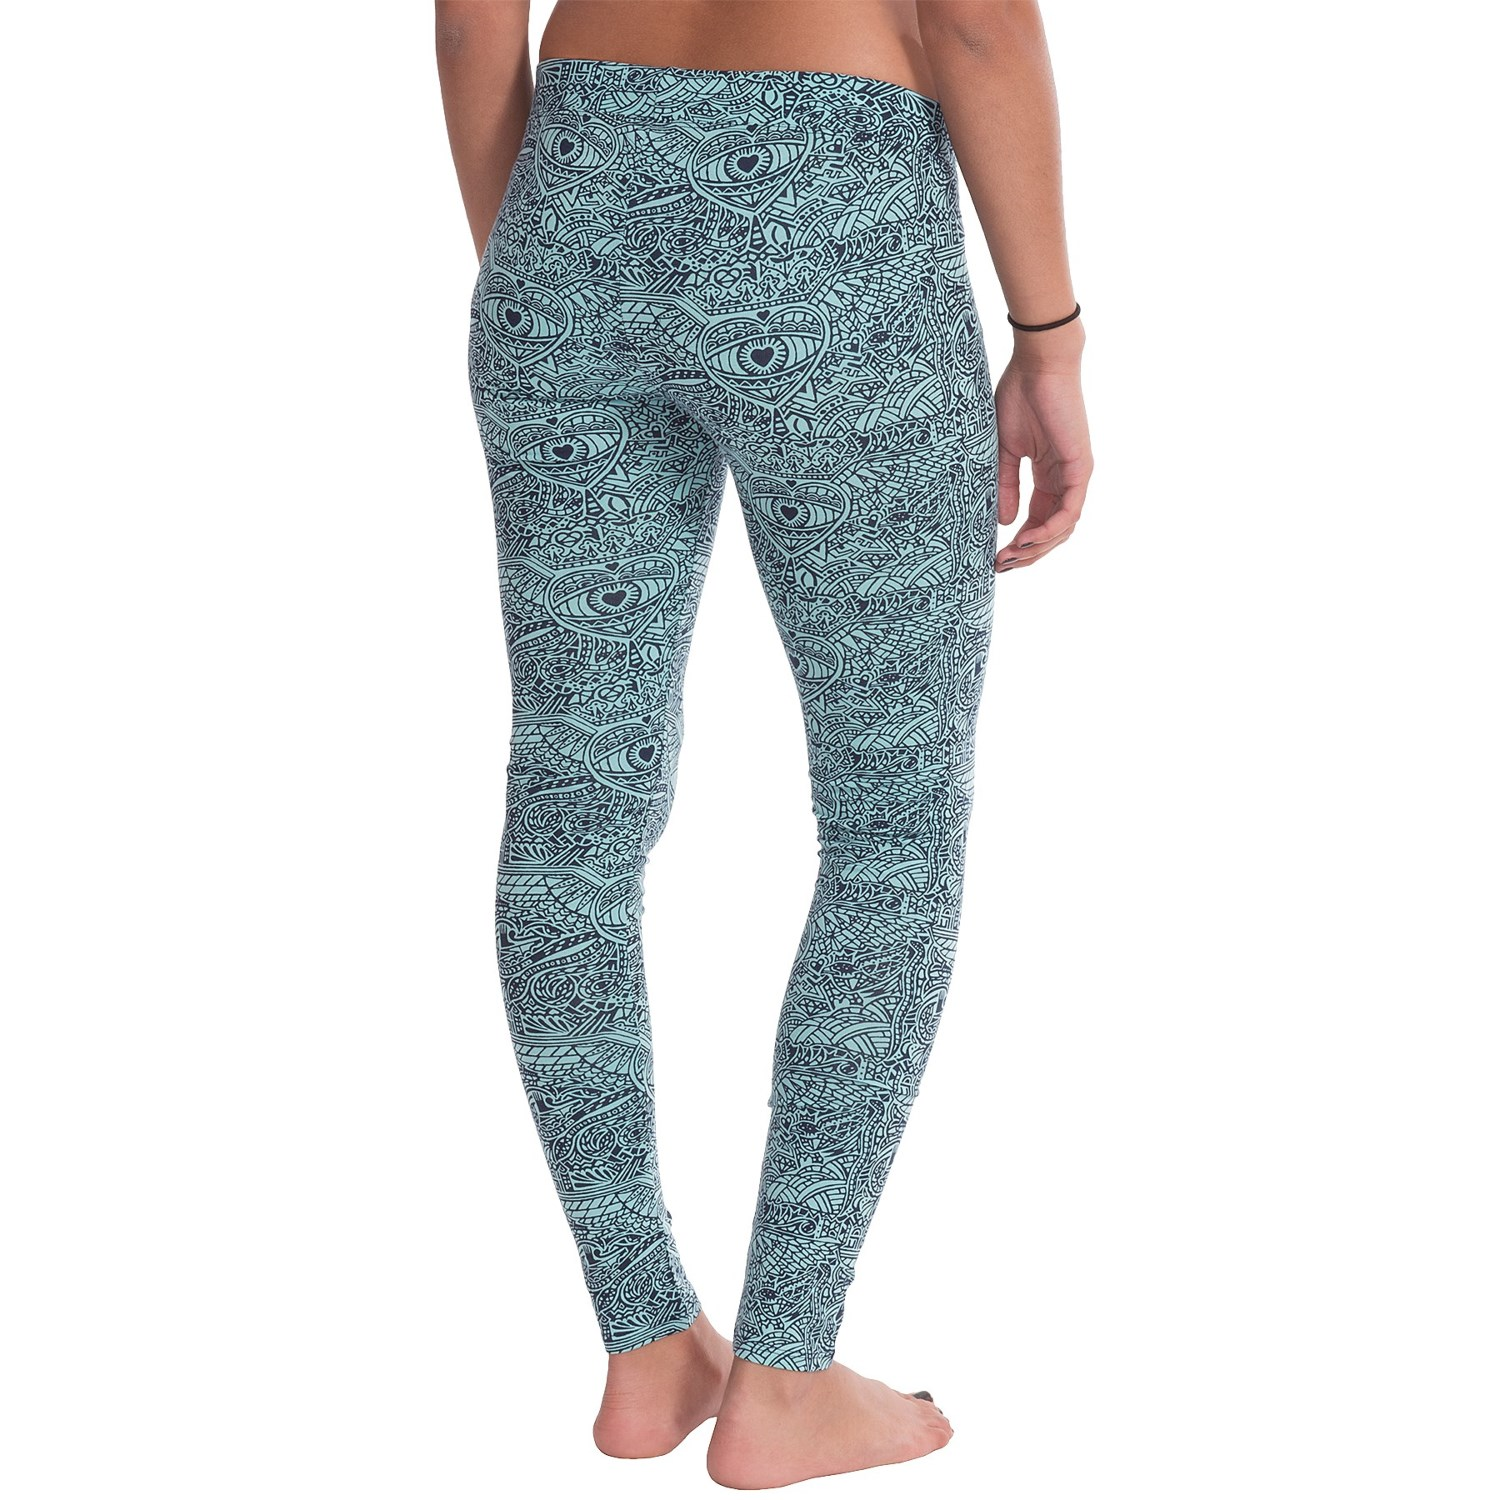 Best prices on Cotton womens plus size leggings in Women's Pants online. Visit Bizrate to find the best deals on top brands. Read reviews on Clothing & Accessories merchants and buy with confidence.